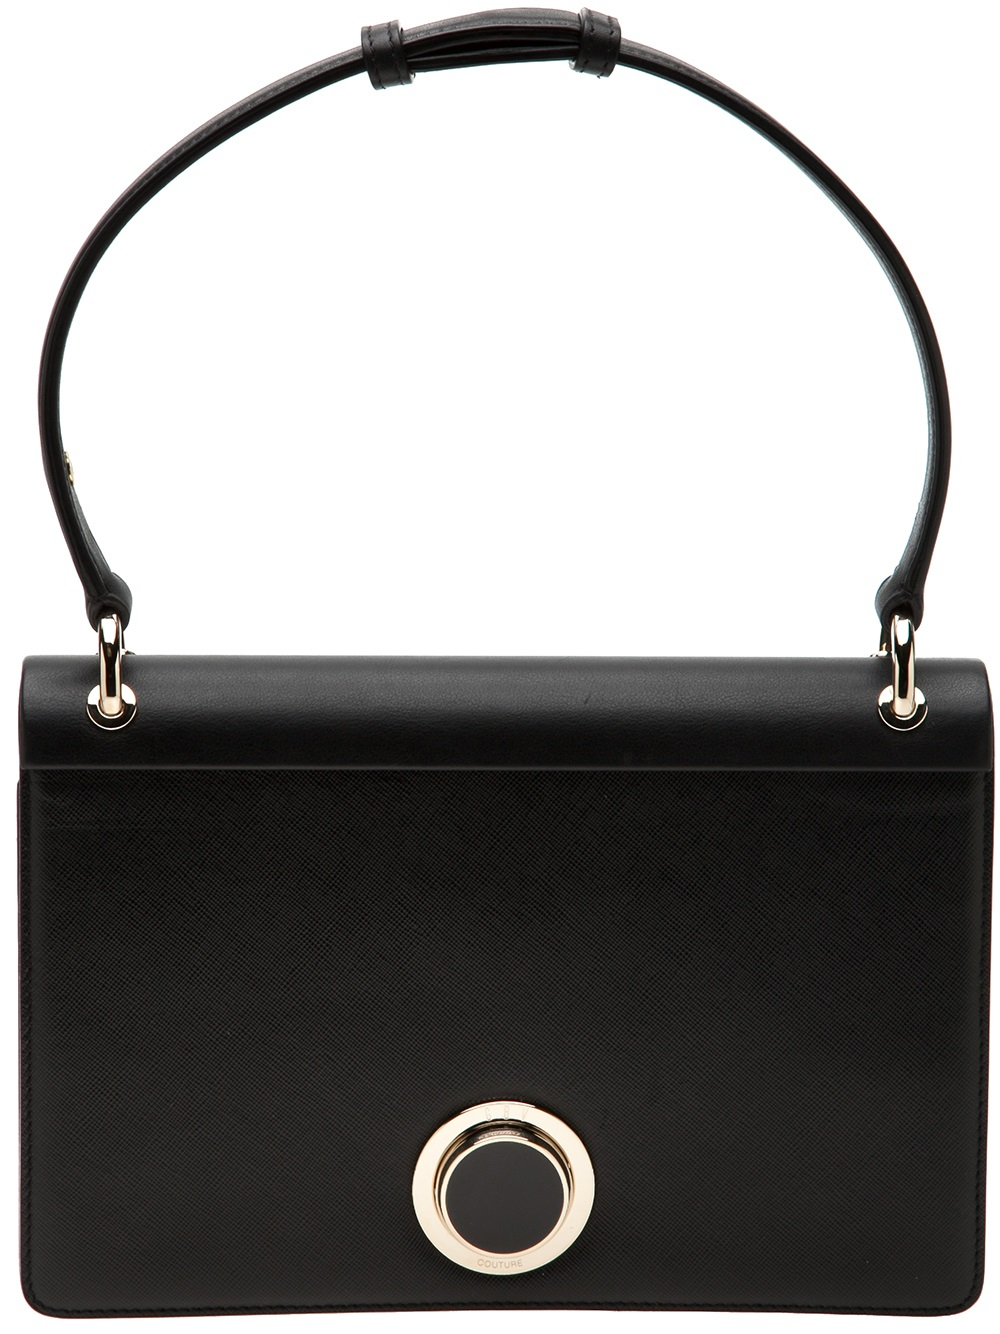 d0564c53c7f Giambattista Valli Shoulder Bag in Black - Lyst